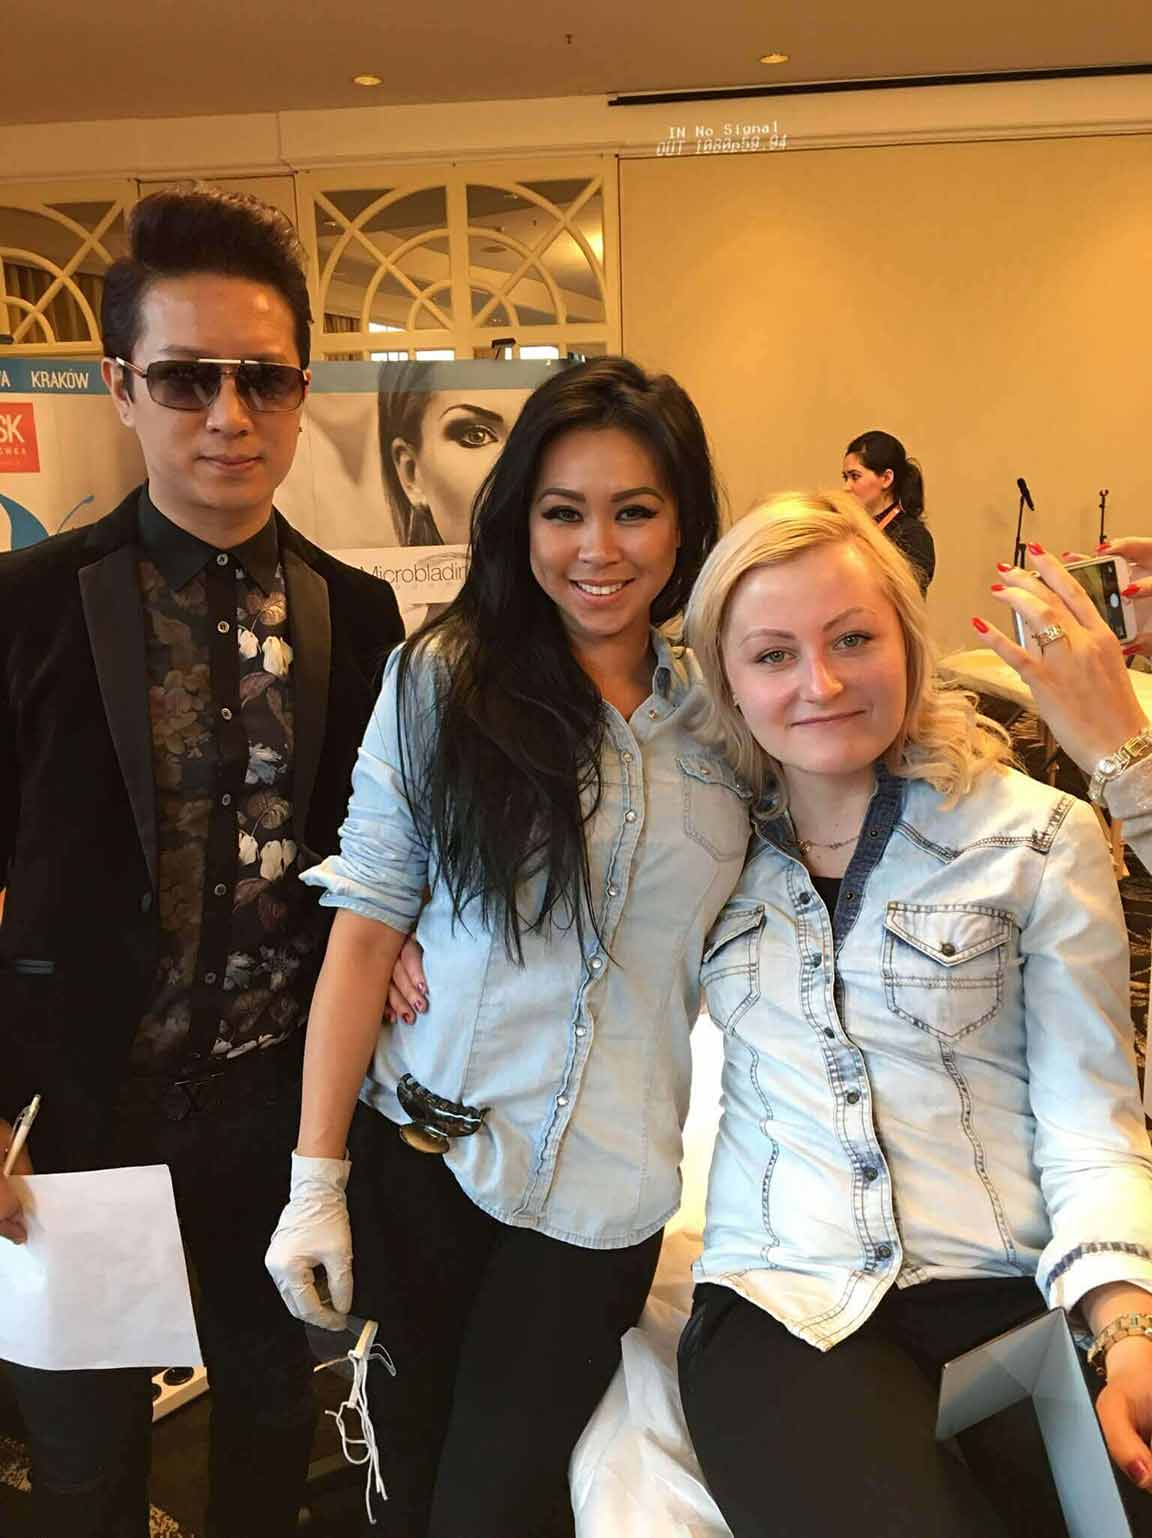 World of Microblading Judge David Zhang with champion Lindsey Ta and model